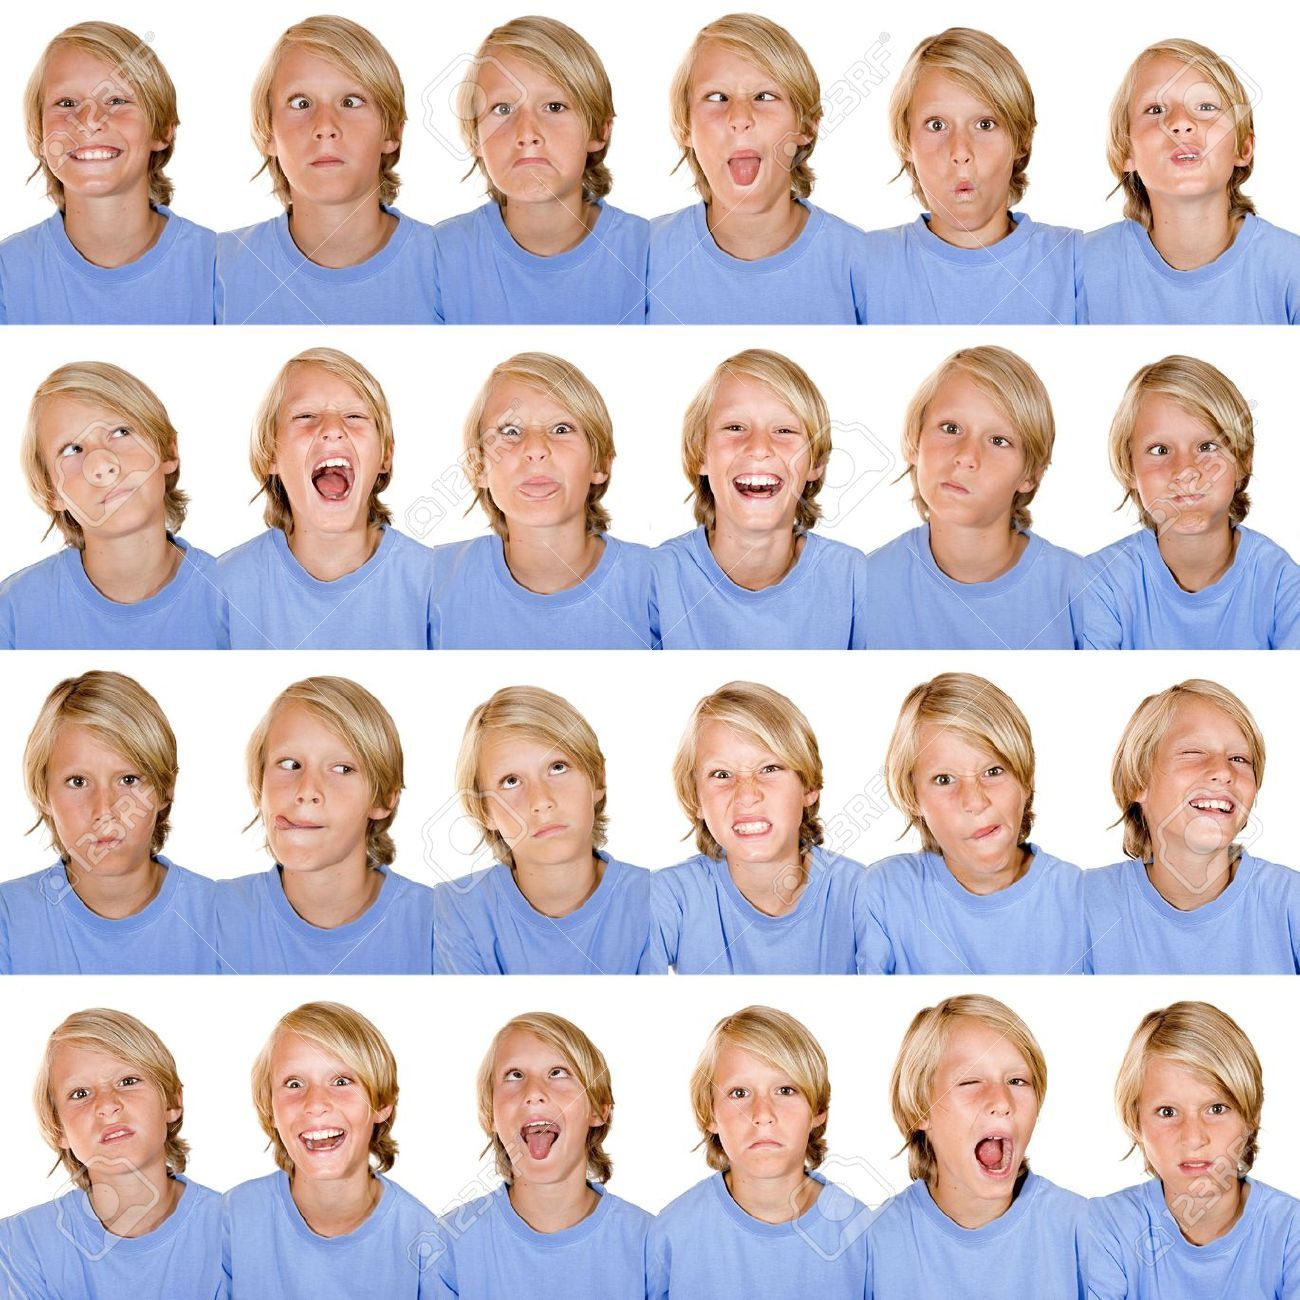 facial expressions - Google Search